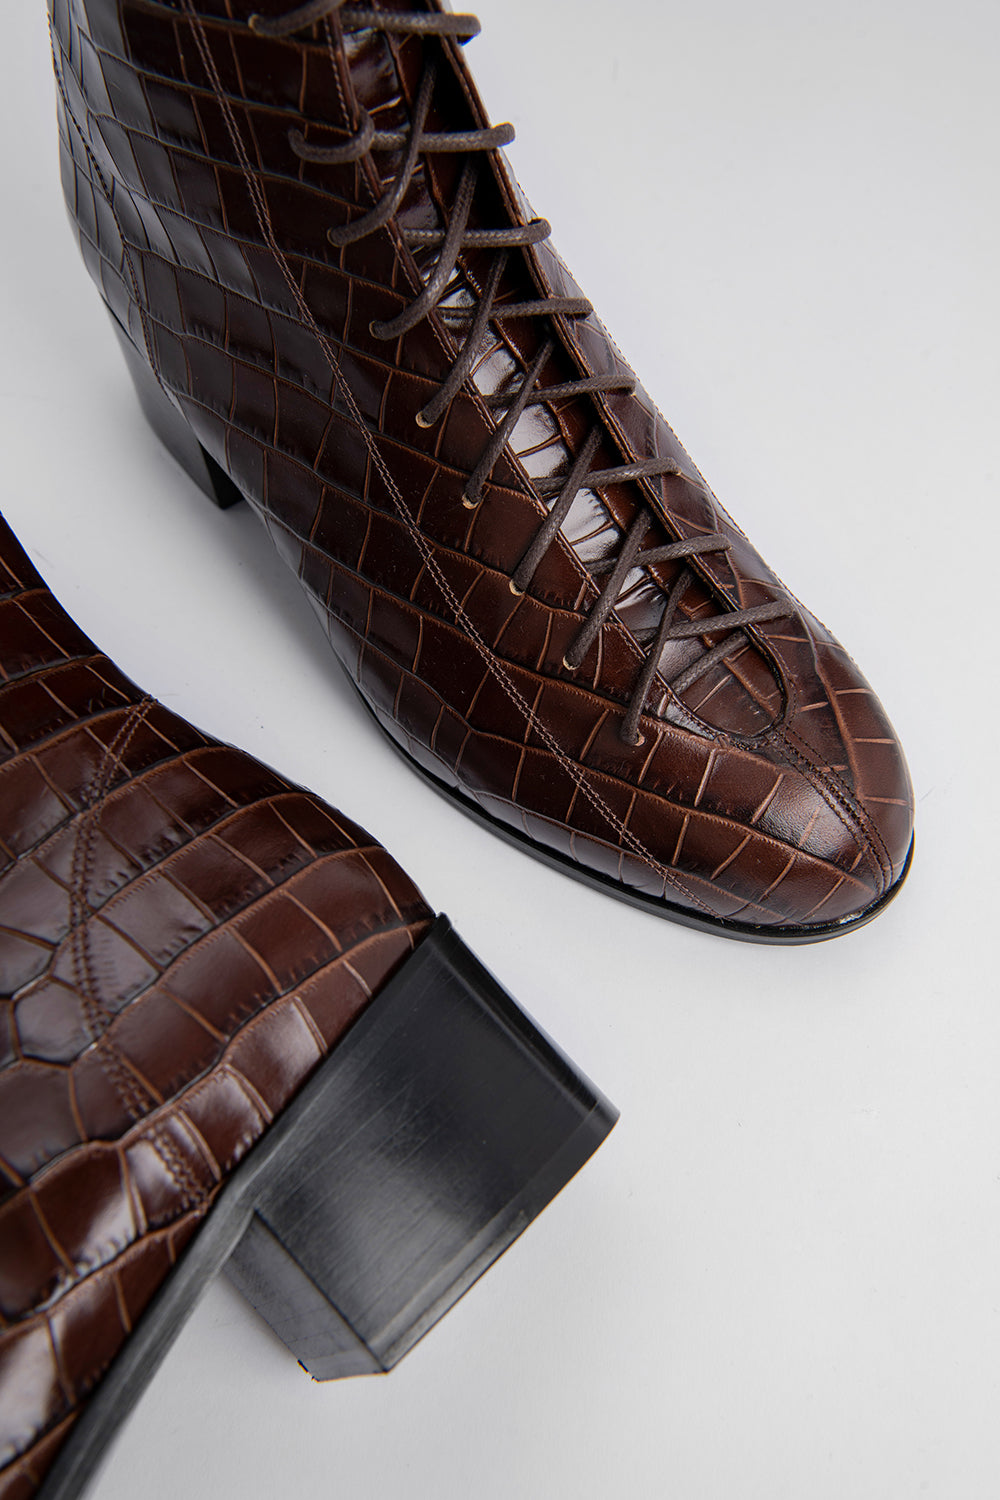 Bota Nutella Croco Embossed Leather